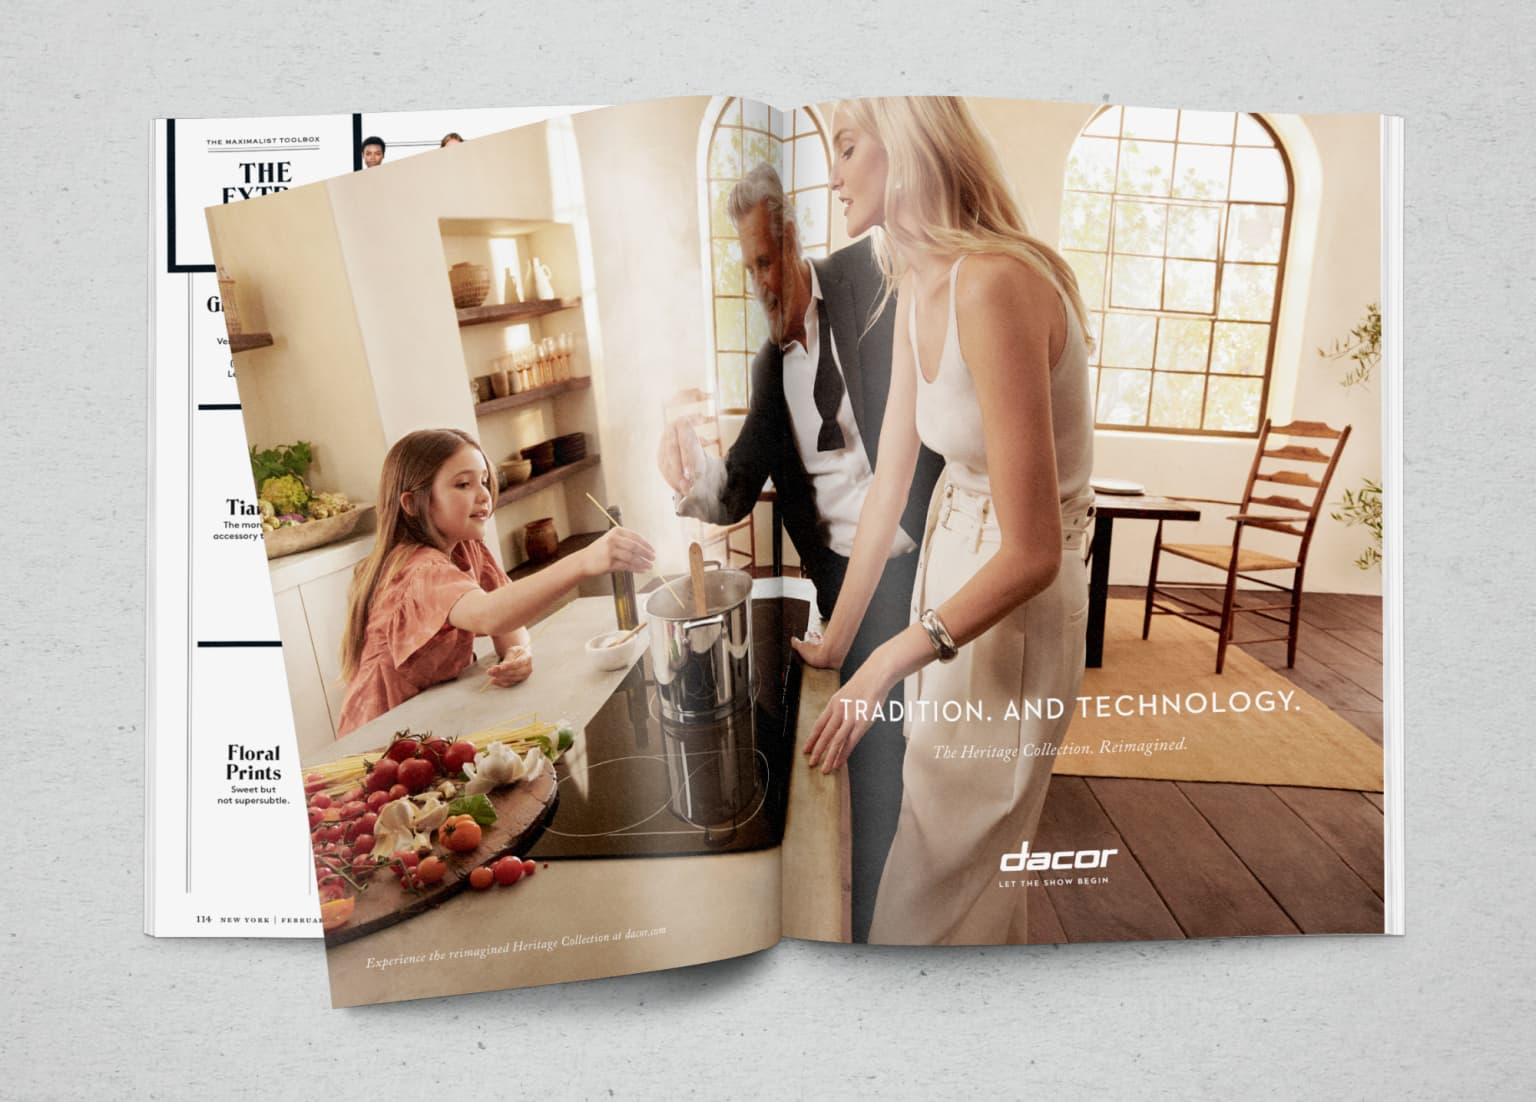 Dacor: The Reimagined Heritage Collection